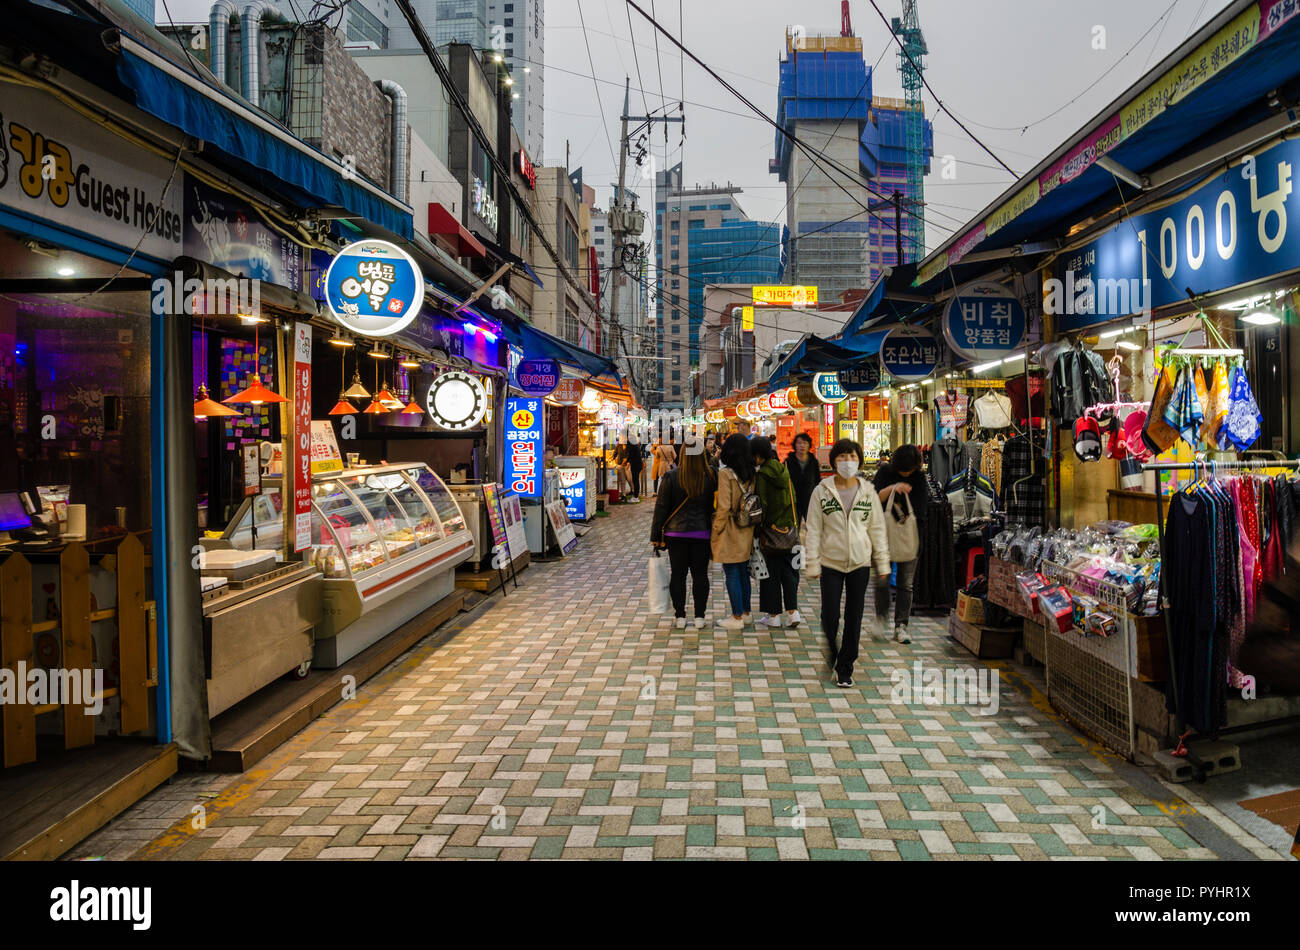 people-amble-through-haeundae-maerket-at-dusk-as-it-goes-dark-and-lights-come-on-haeundae-busan-south-korea-PYHR1X.jpg